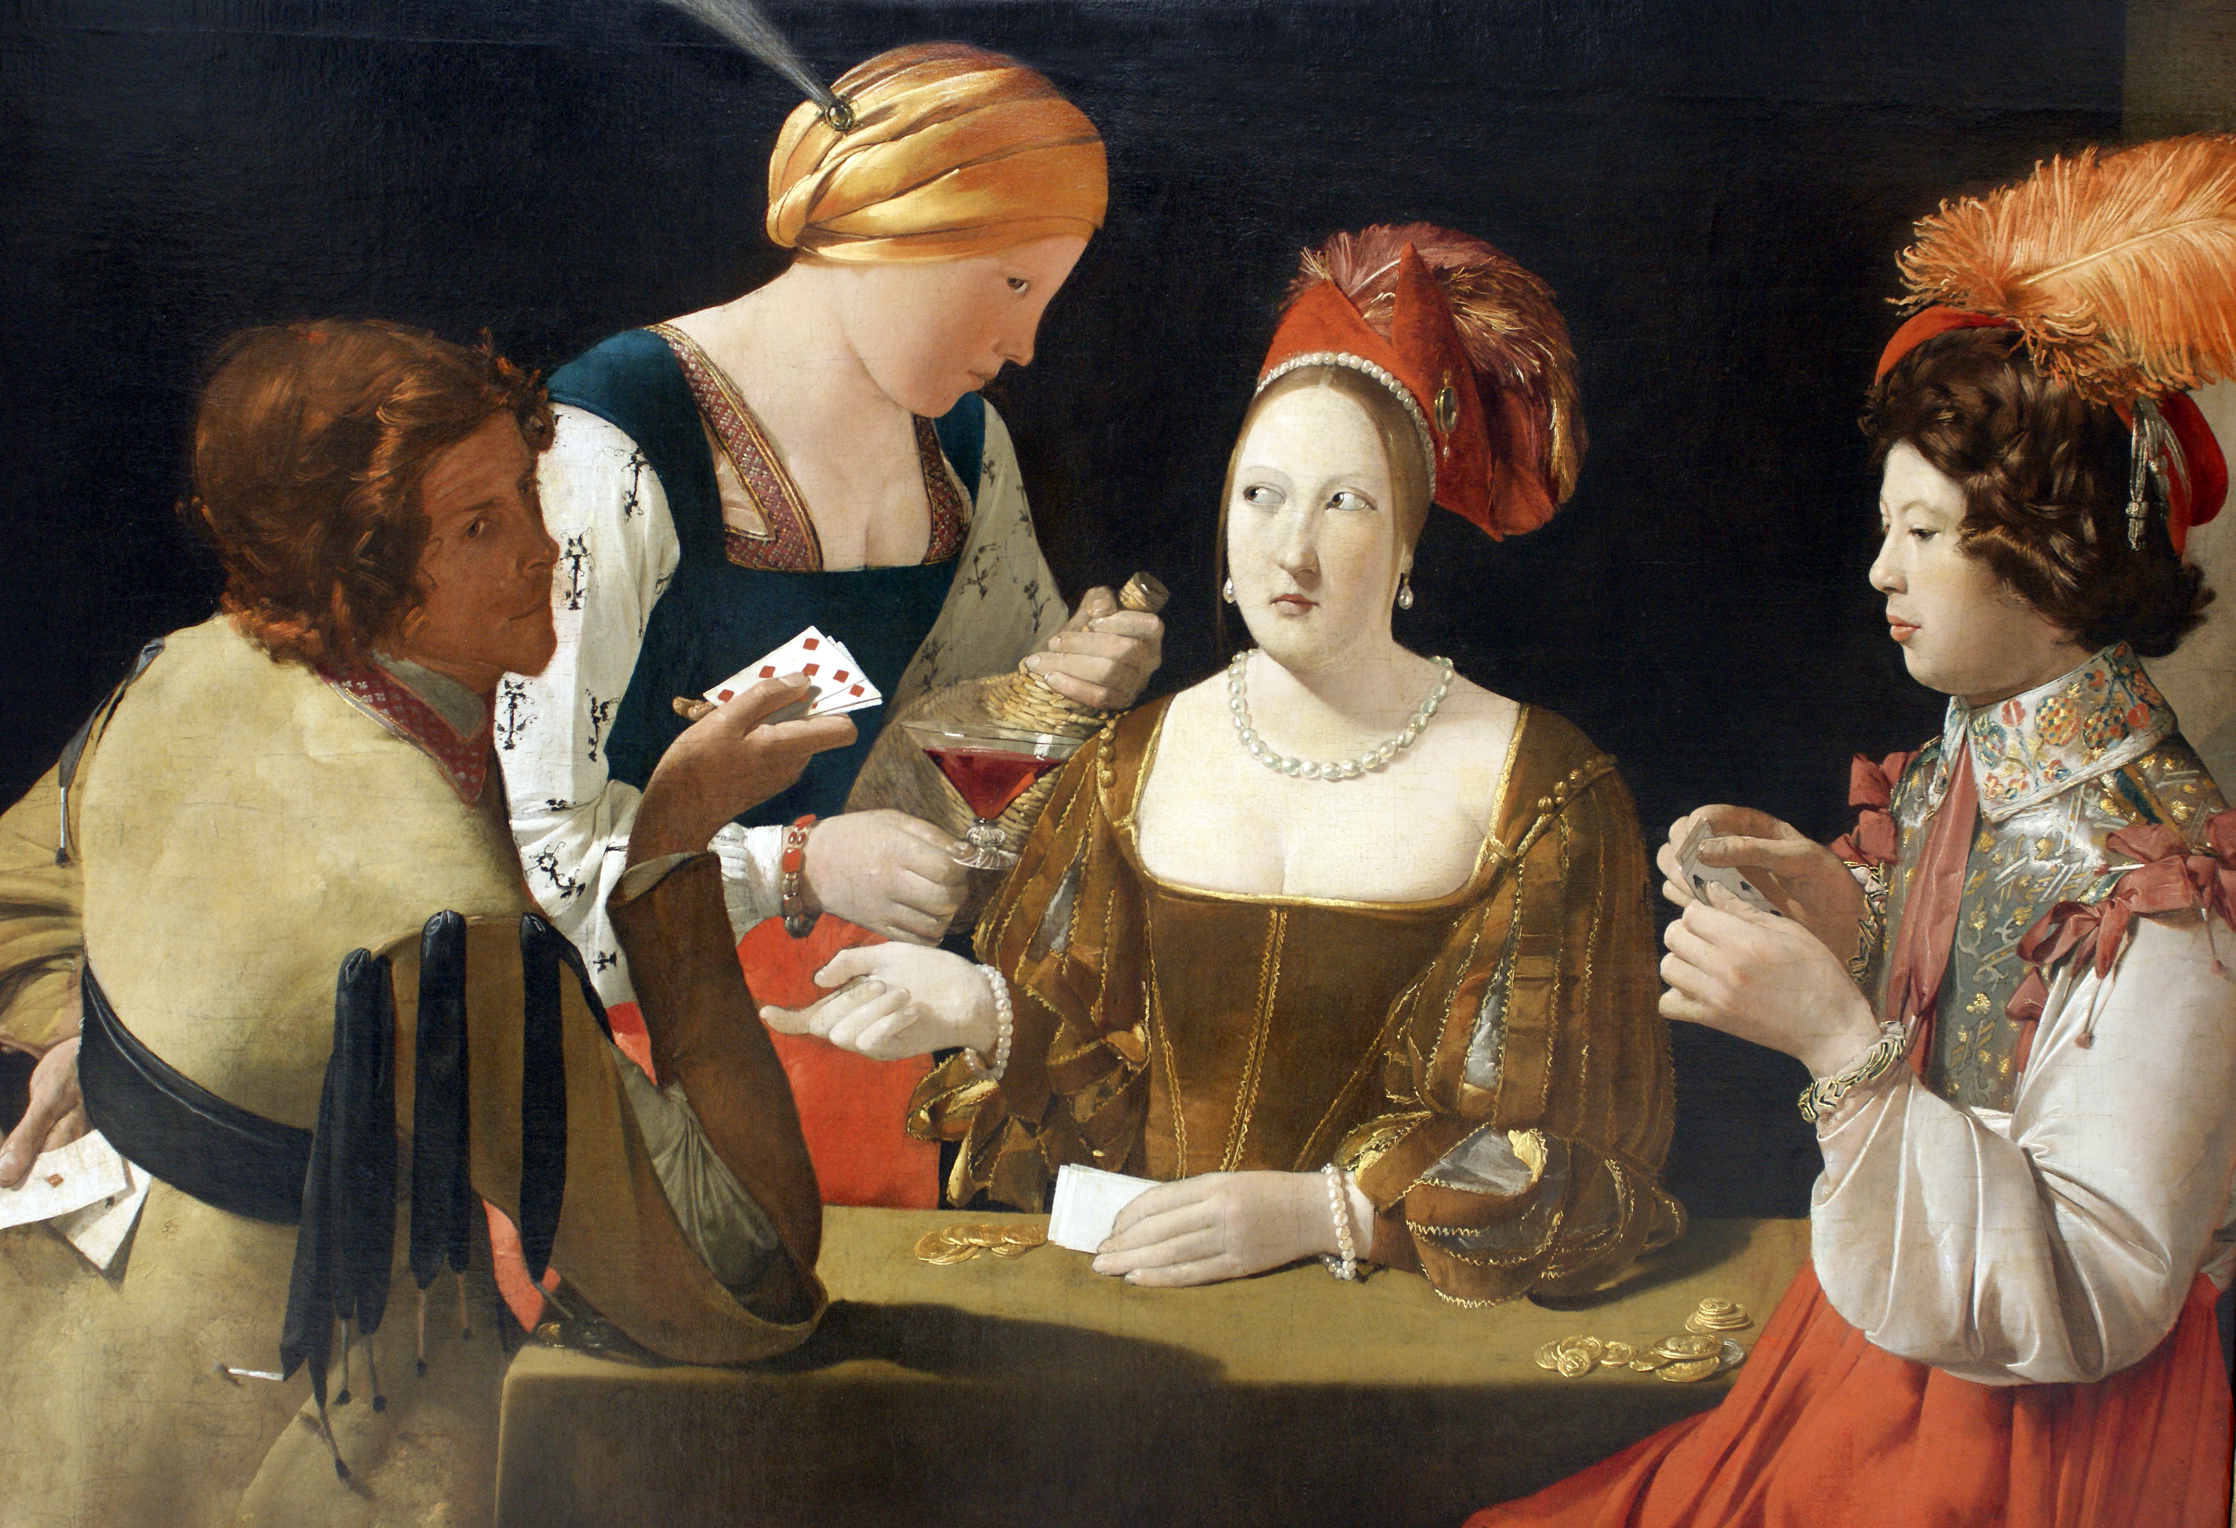 Le tricheur à l'as de carreau, Georges de La Tour, 1636-1638. Musée du Louvre (Paris).